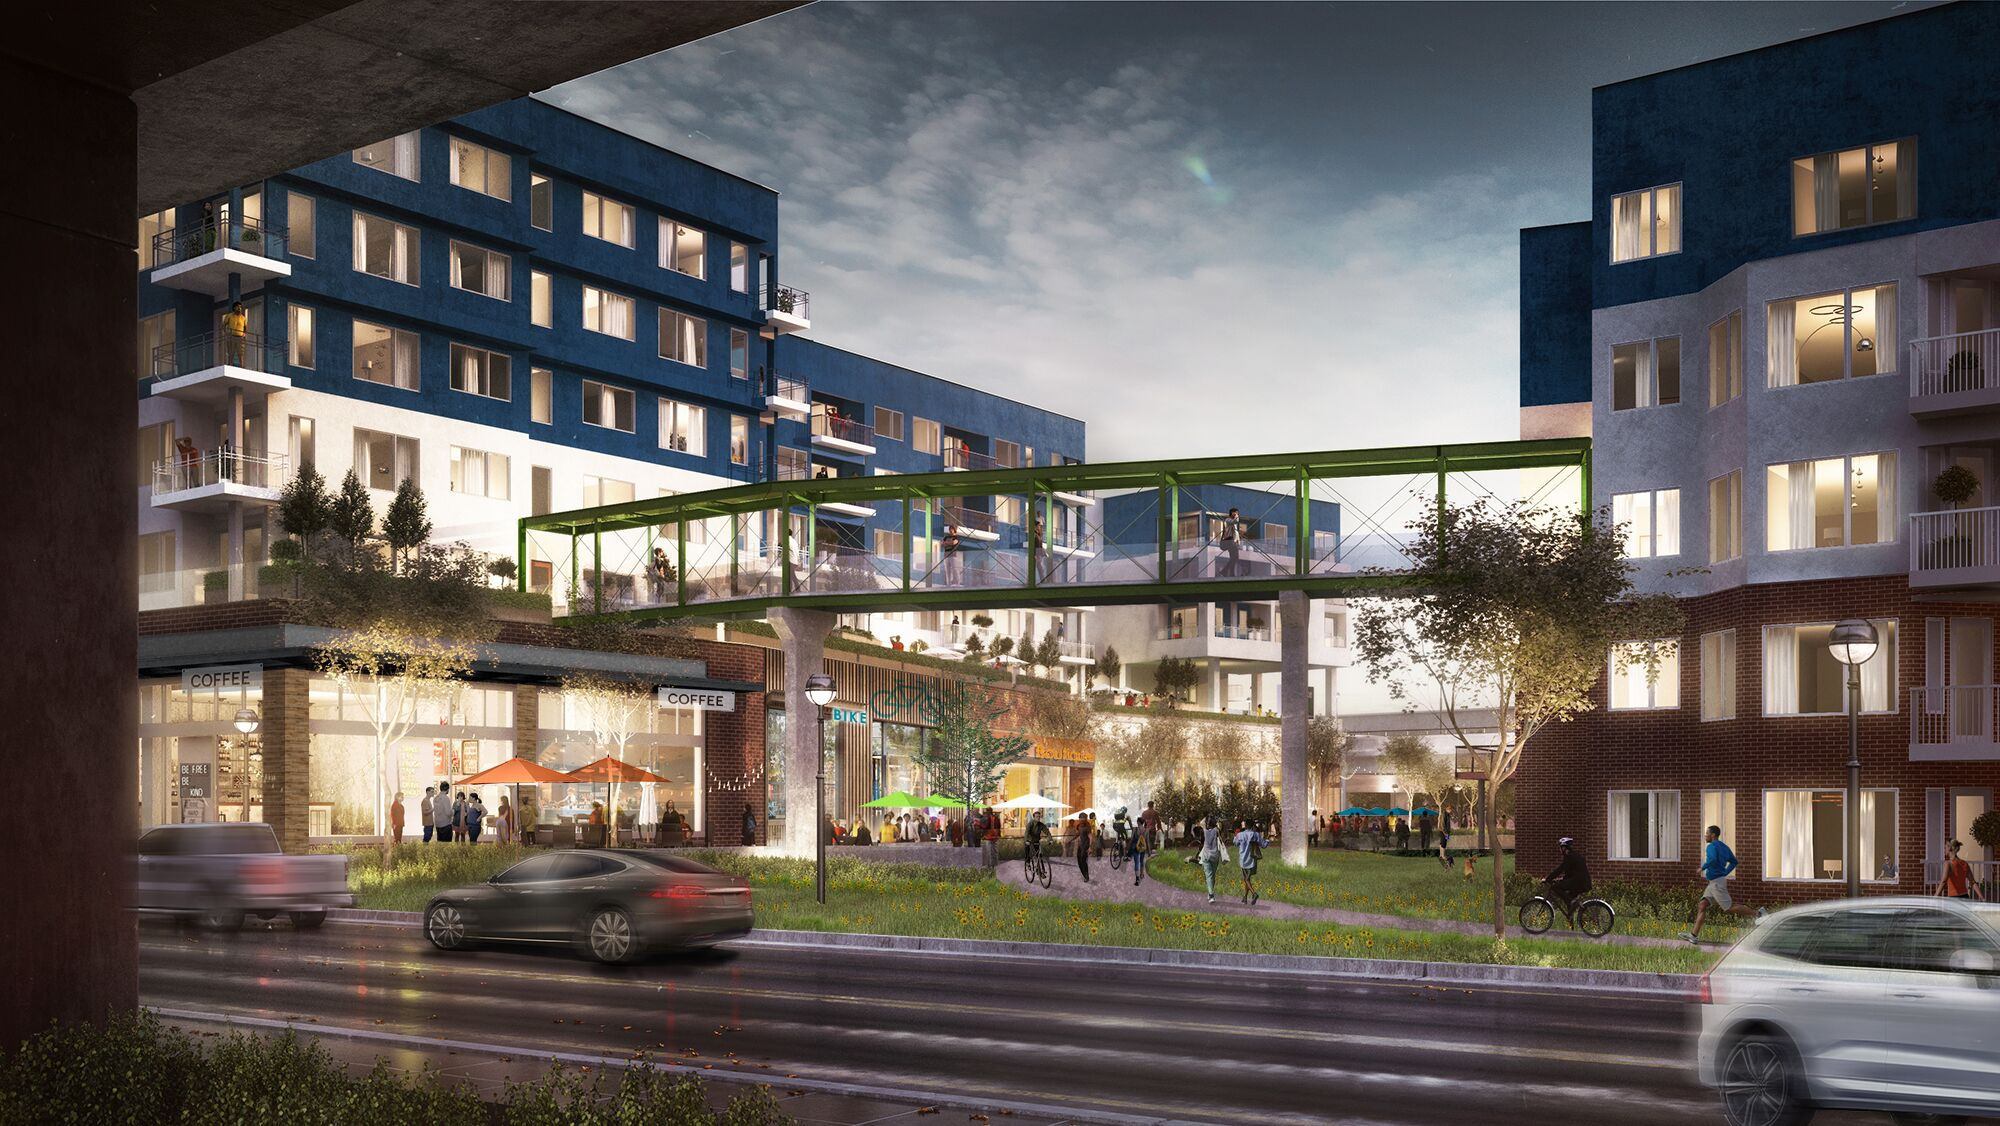 a rendering of the dekalb avenue side of the complex